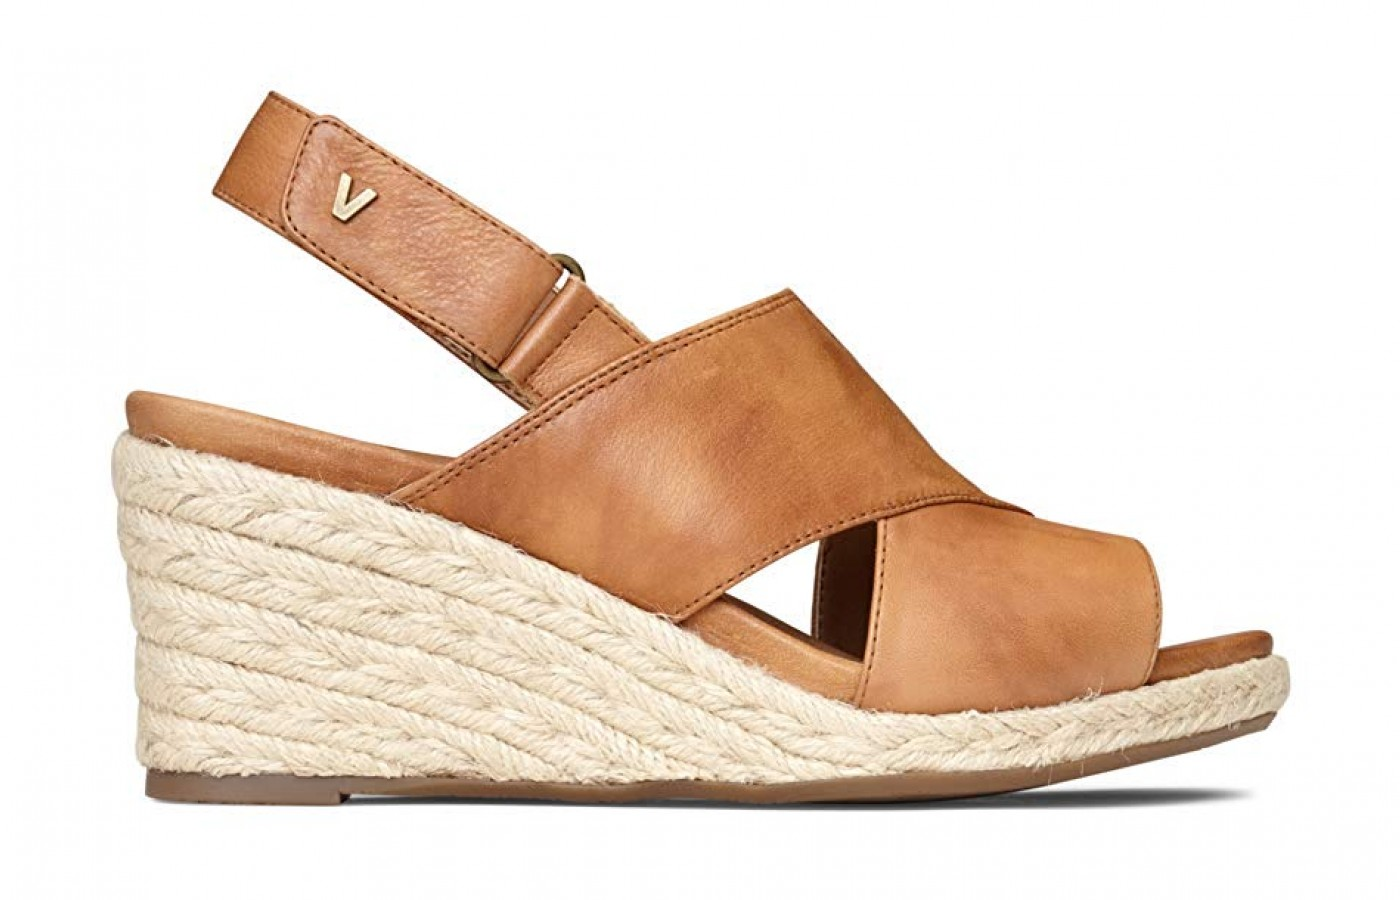 Vionic Tulum Zamar wedge sandal is super stylish